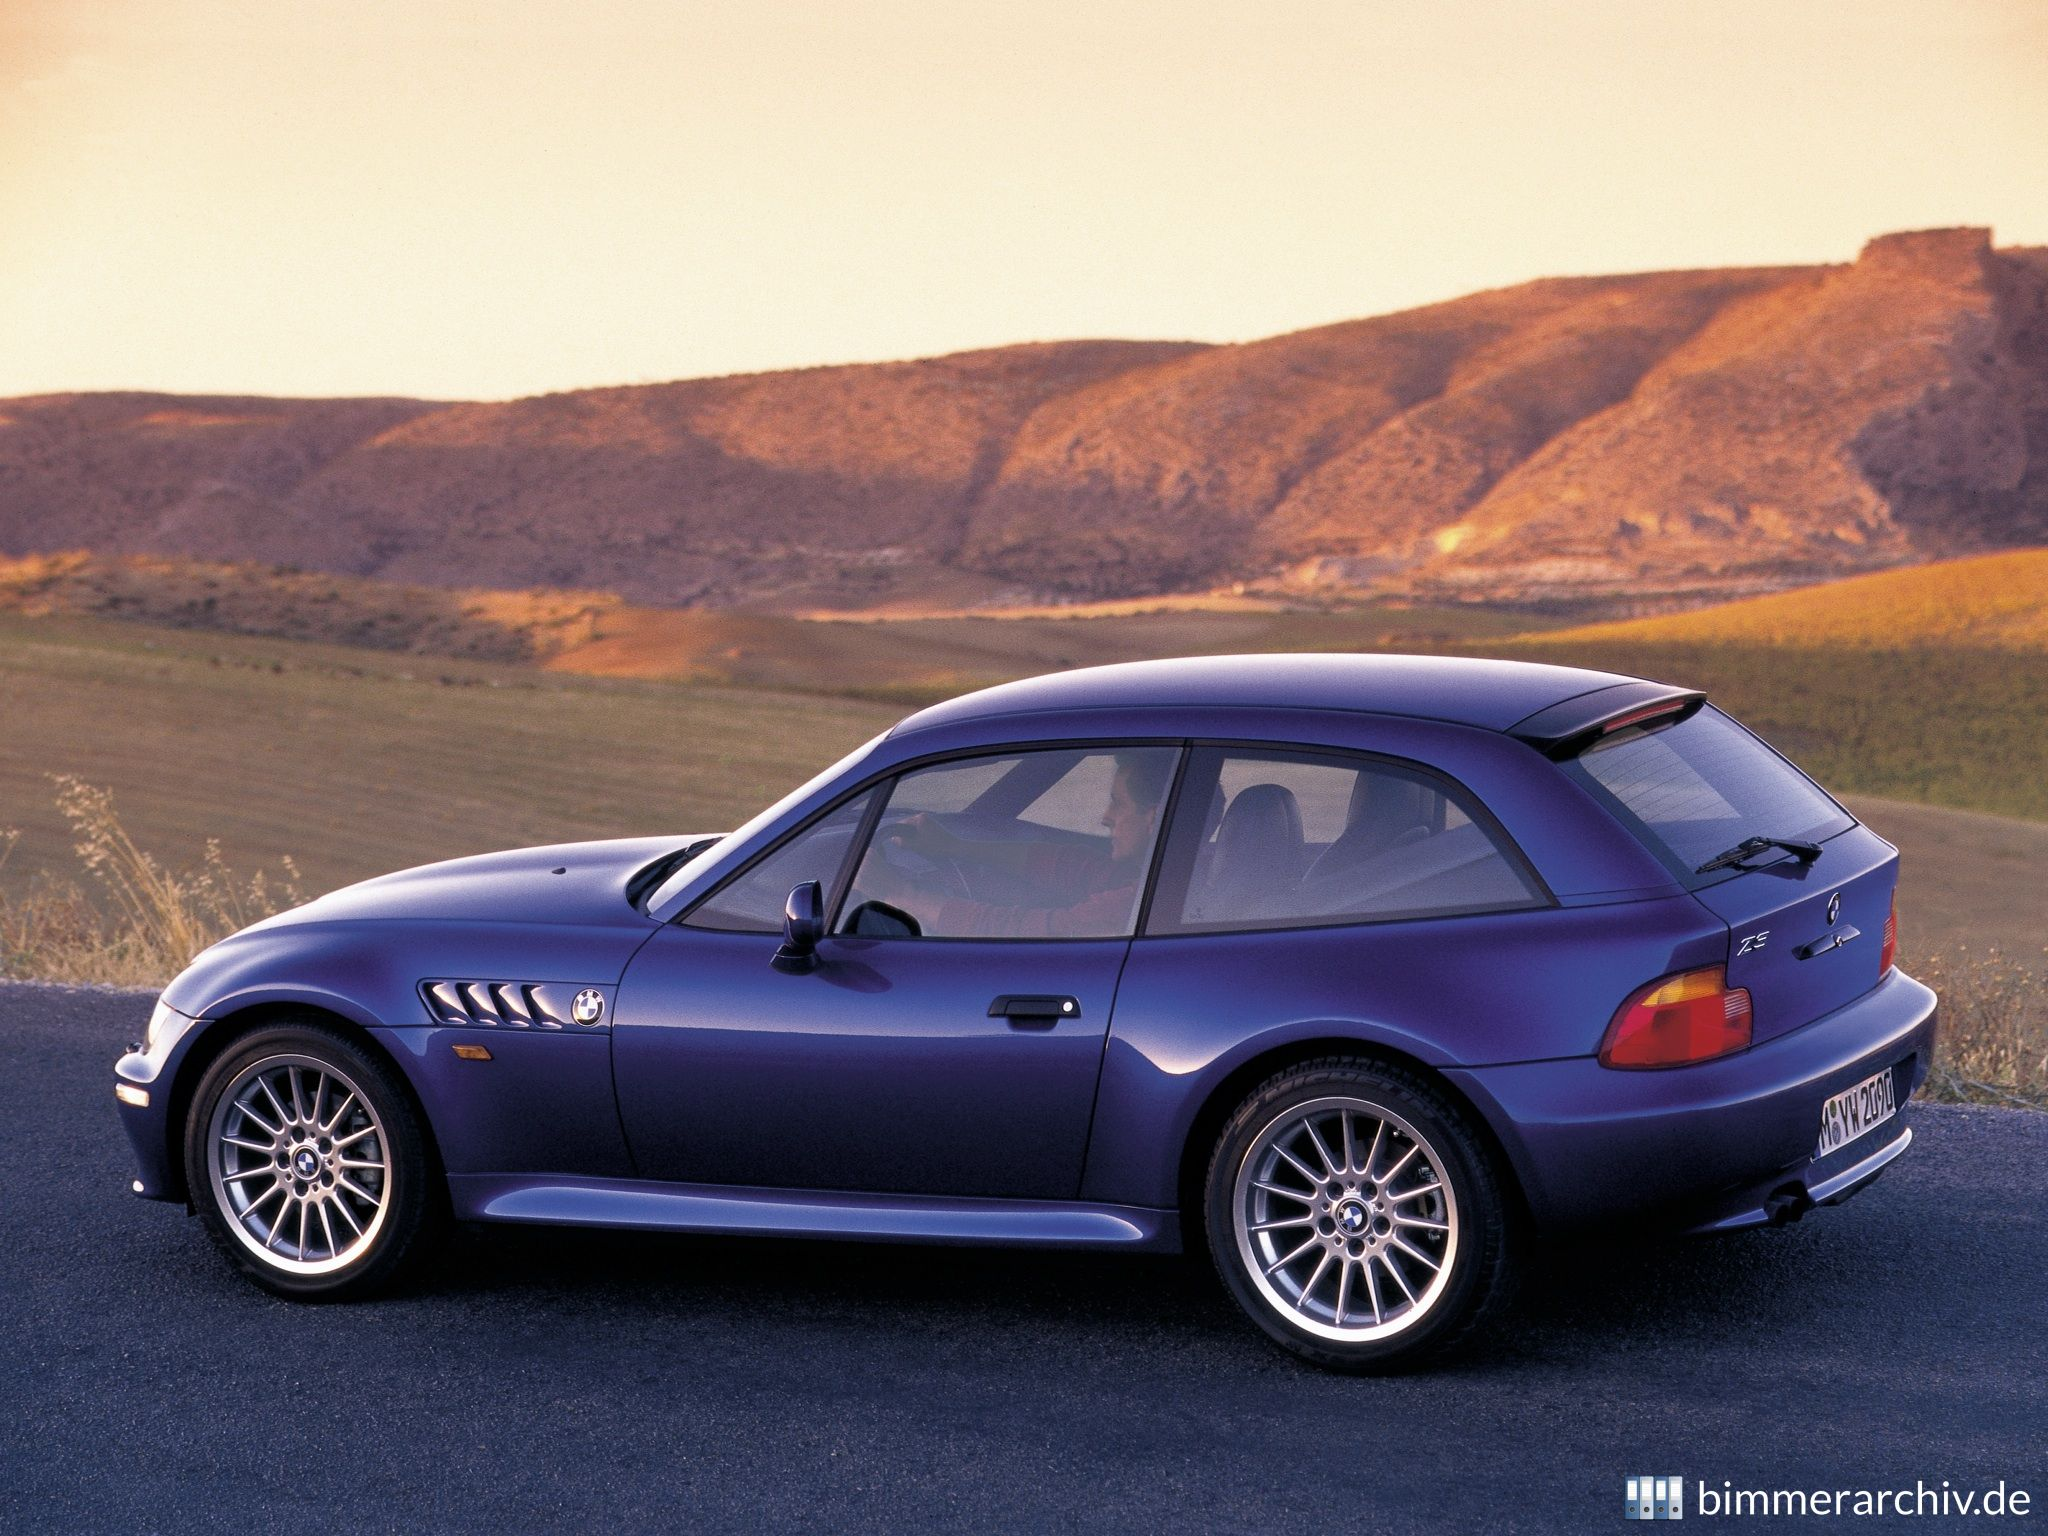 Model Archive For Bmw Models Bmw Z3 Coupe 2 8 Bmwarchive Org